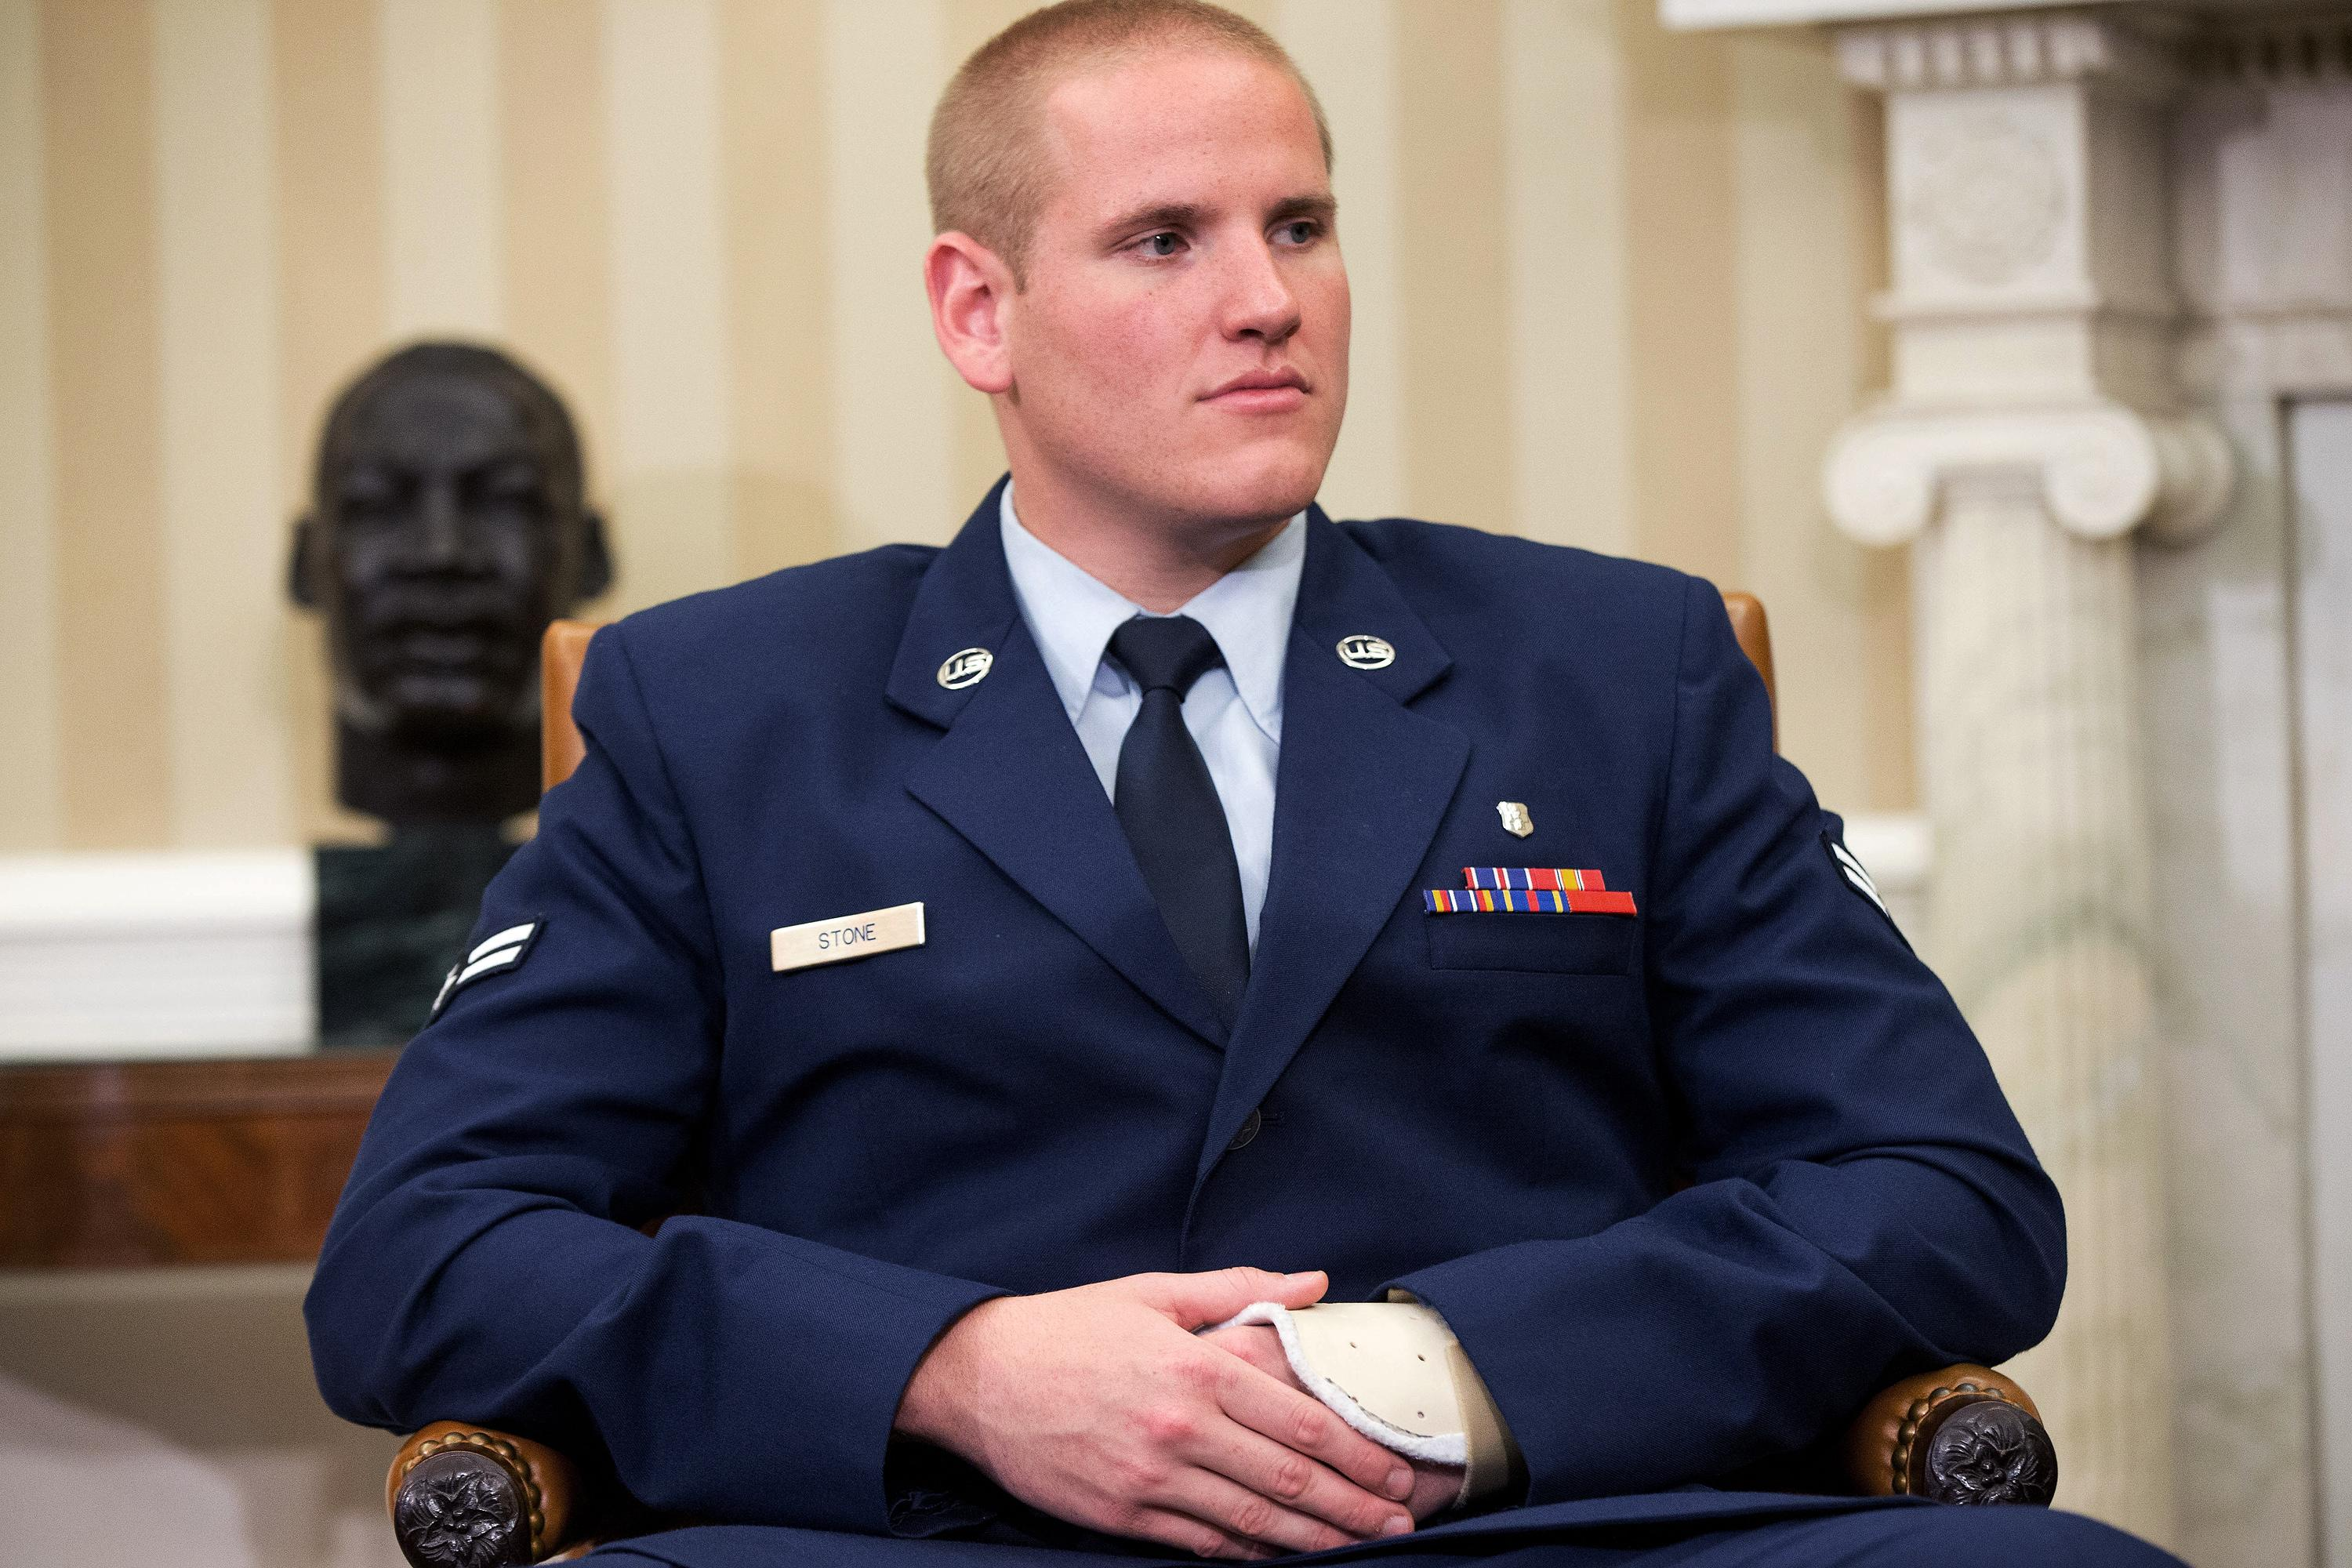 The Latest: Video shows knife fight that injured US airman